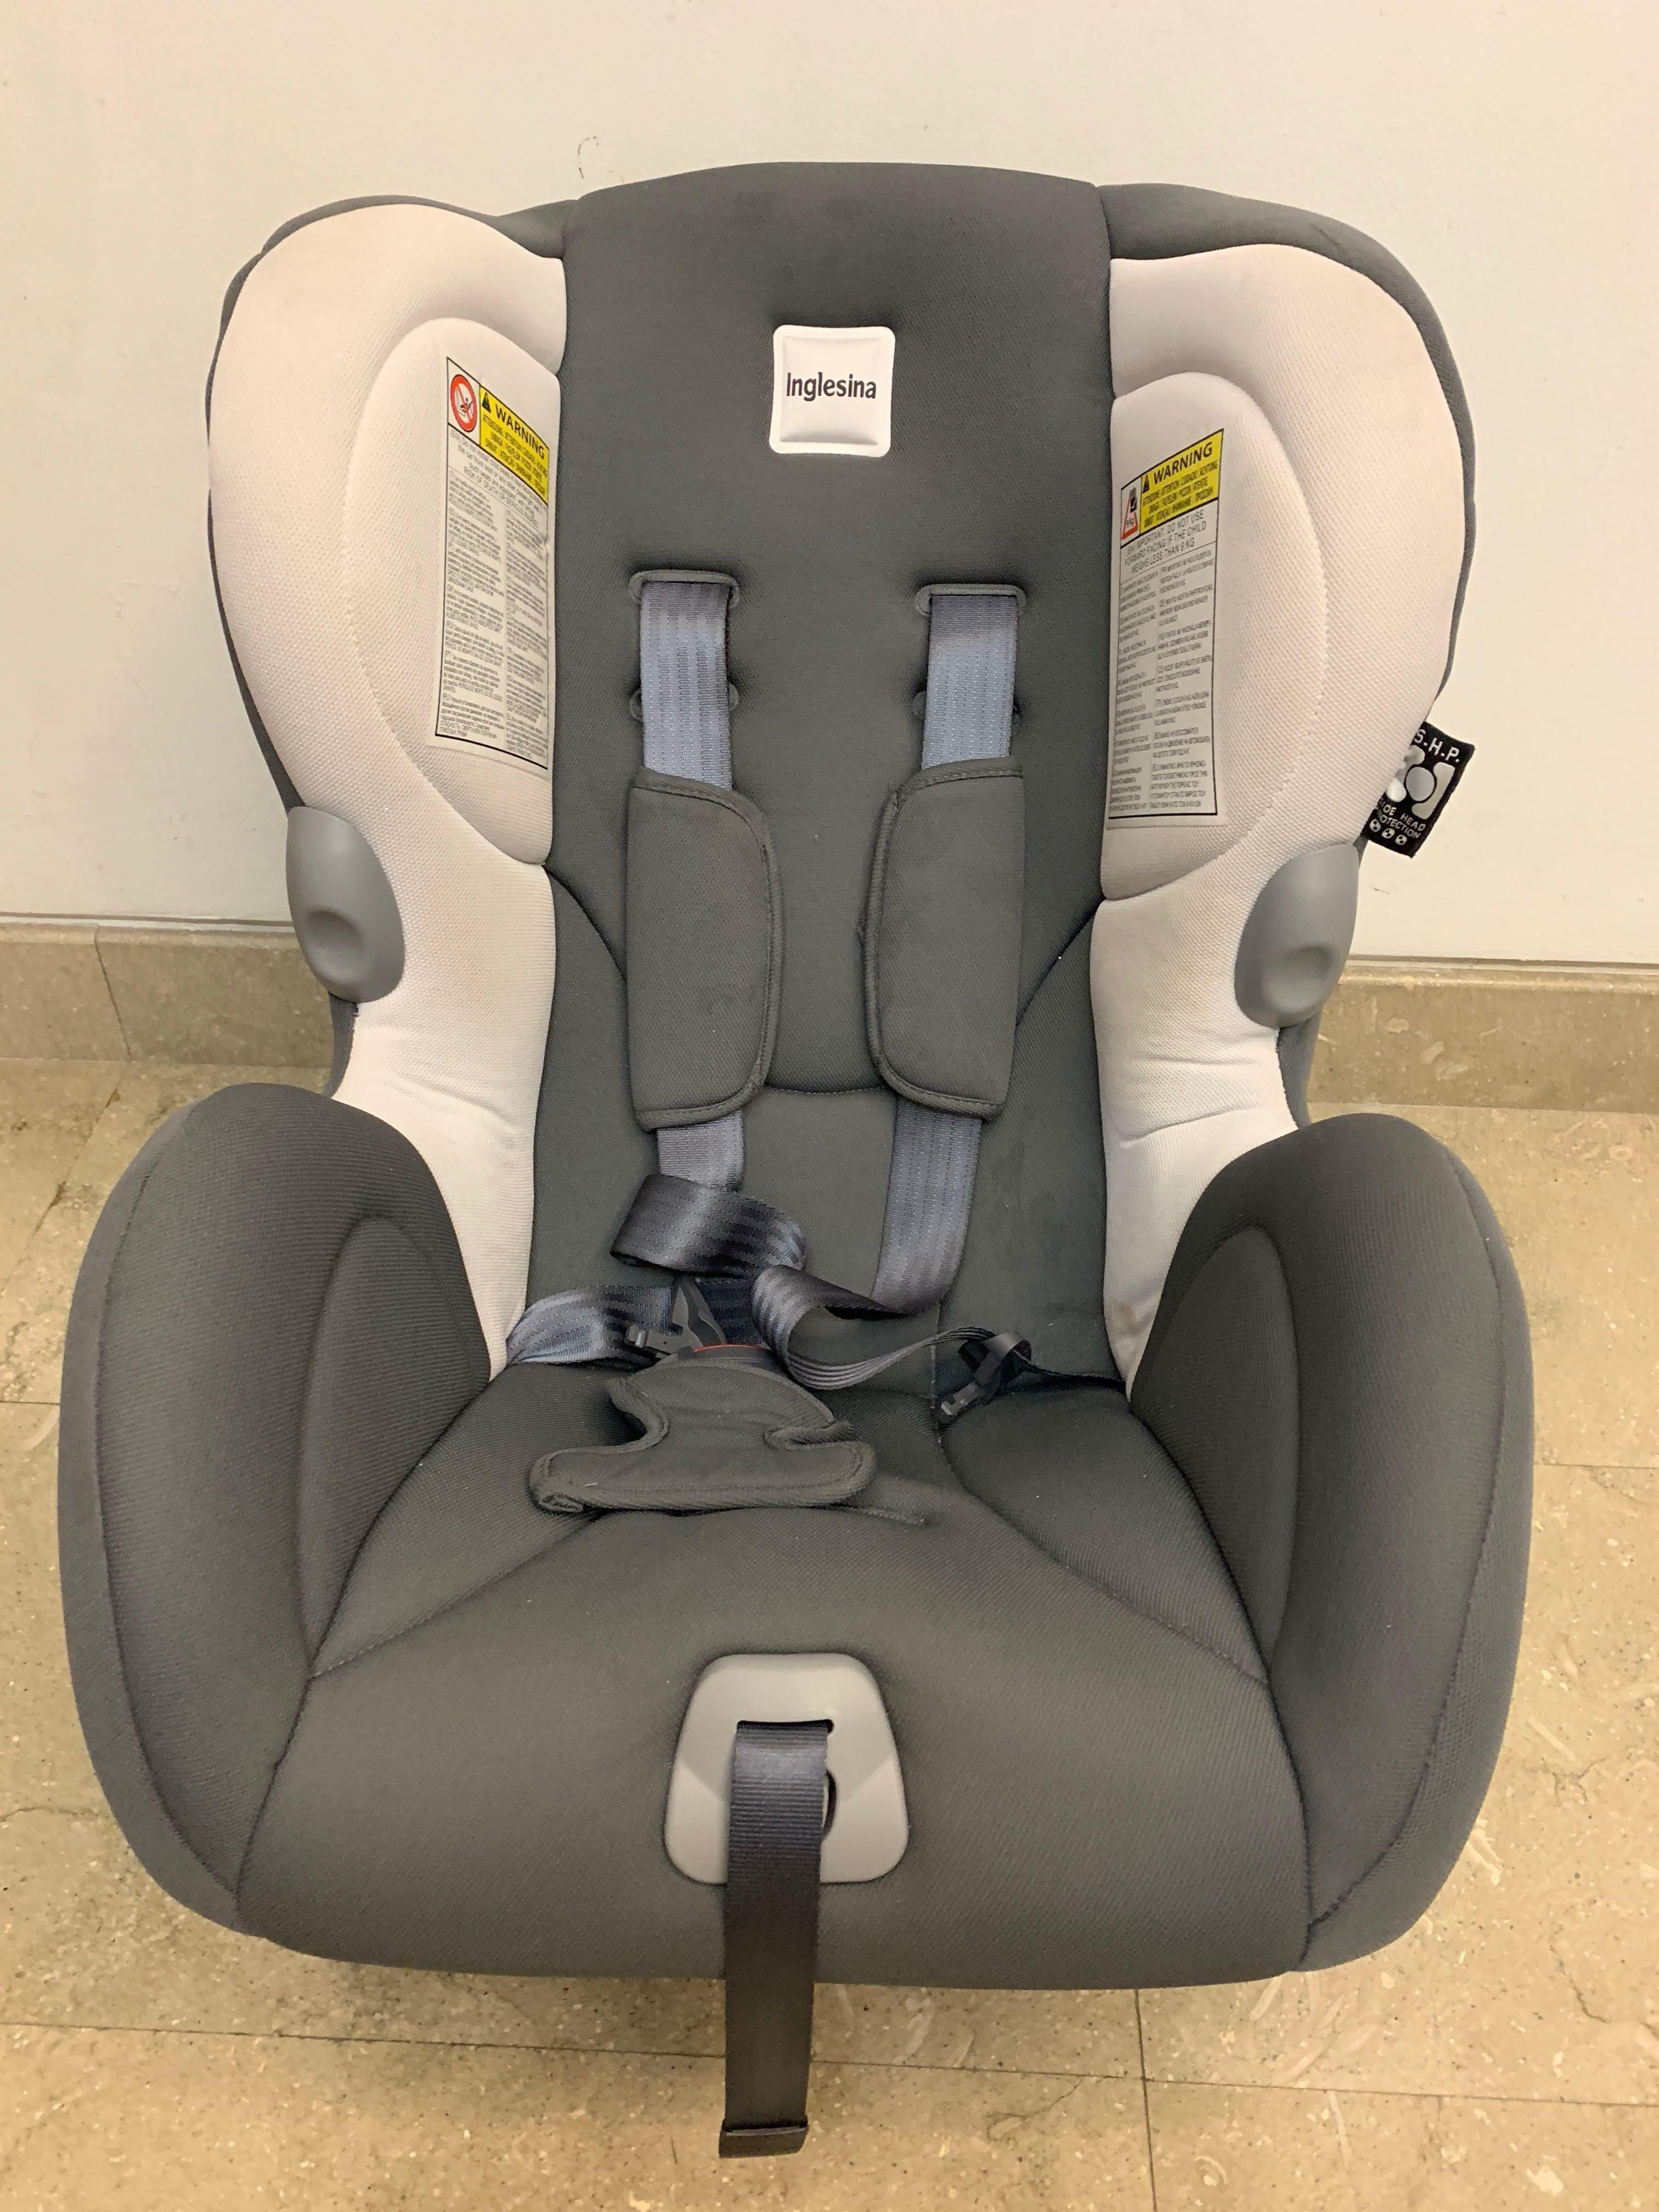 Reduced Inglesina Marco Polo Car Seat Babies Kids Strollers Bags Carriers On Carousell